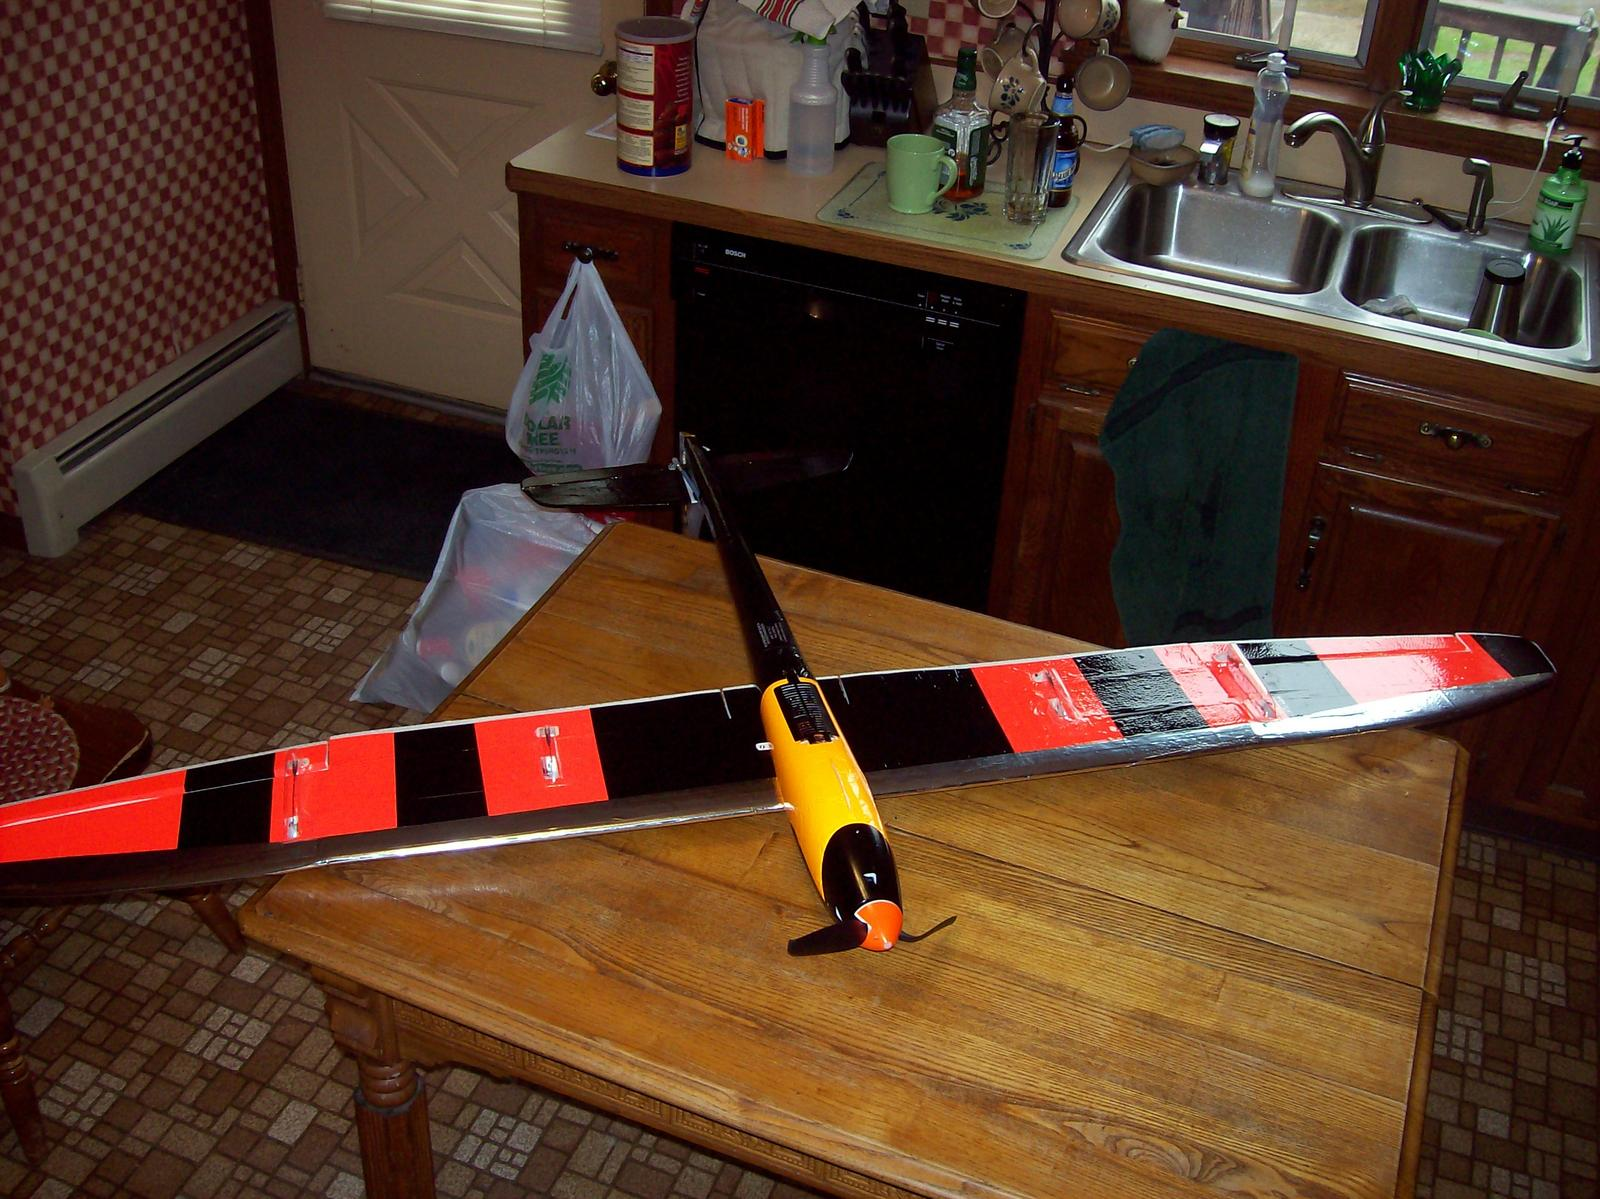 Belly view showing florescent red trim sheeting and Econocoat black stripes on bottom of wing, Econocoat black for tail boom and bottom of tail group, florescent orange trim sheeting for center of fuse, glossy black spray paint for plastic cowling, flores